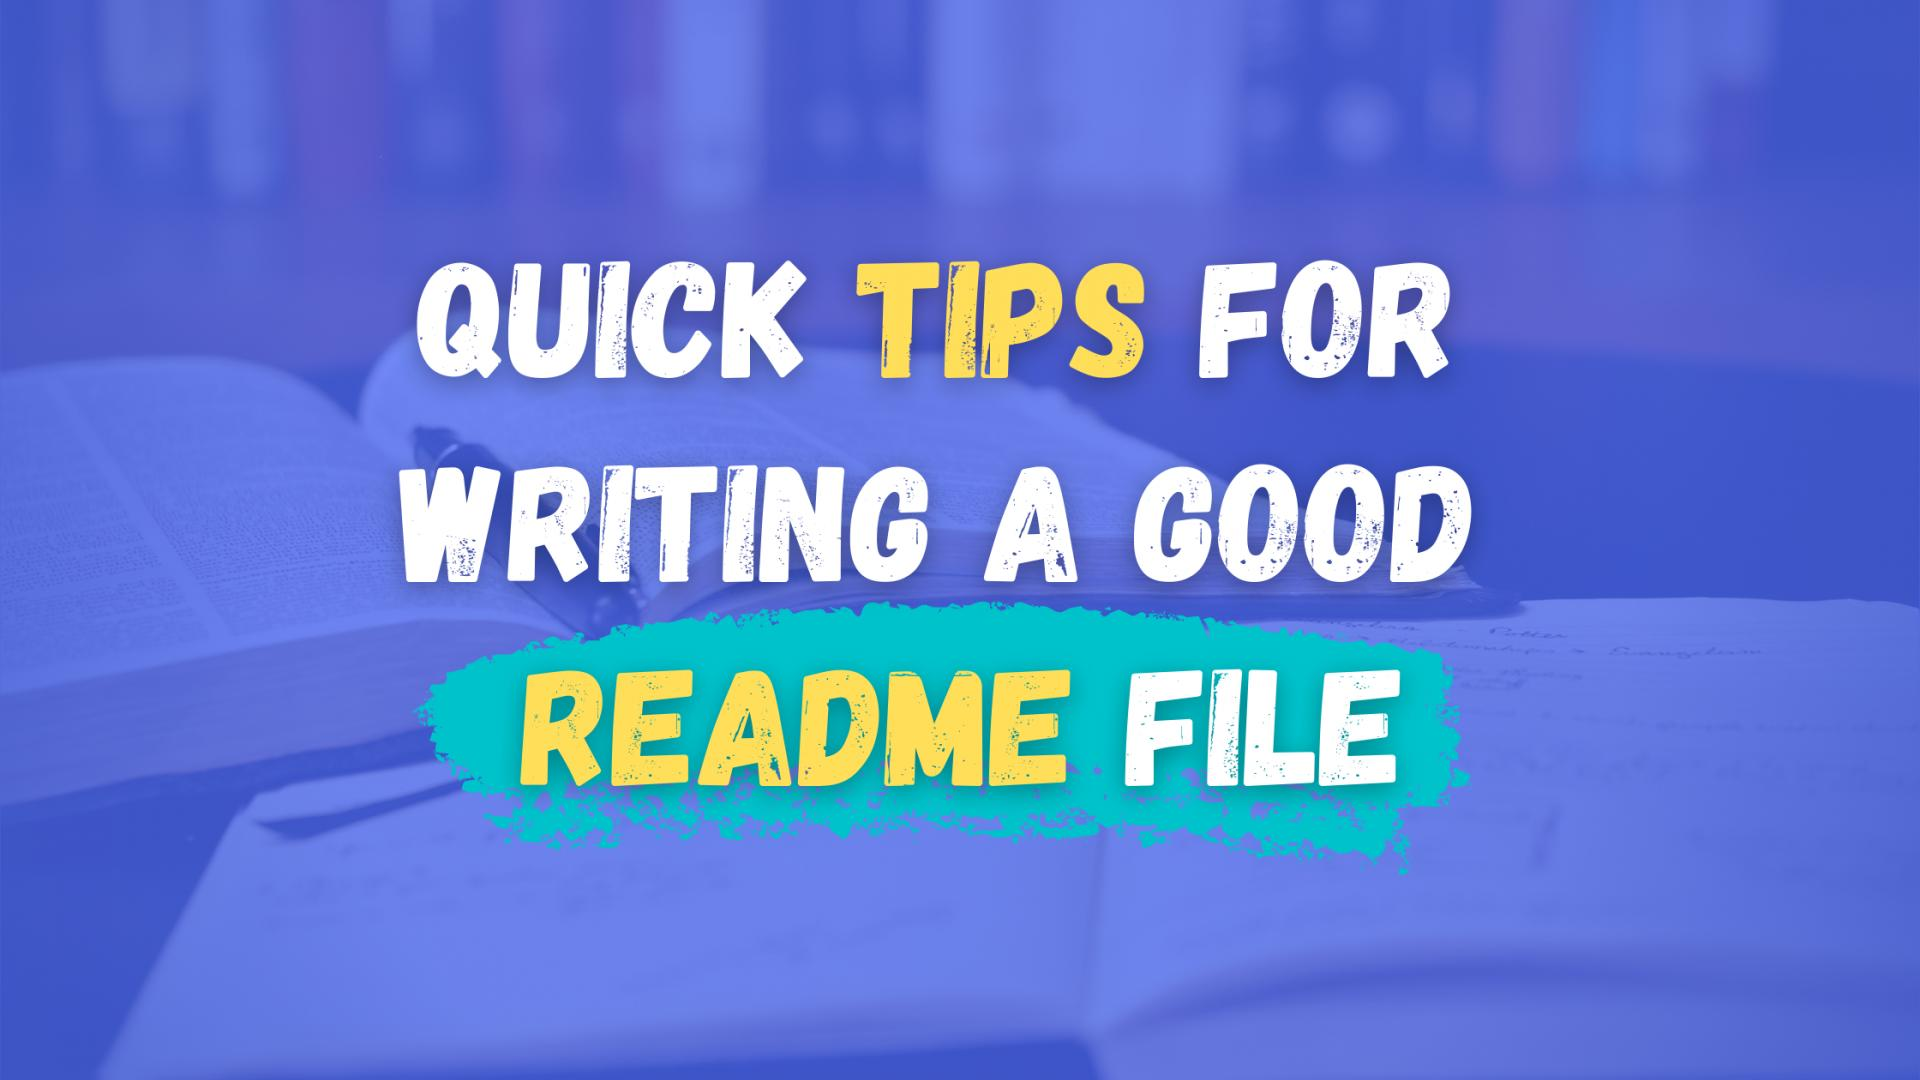 Quick Tips for Writing a Good README File